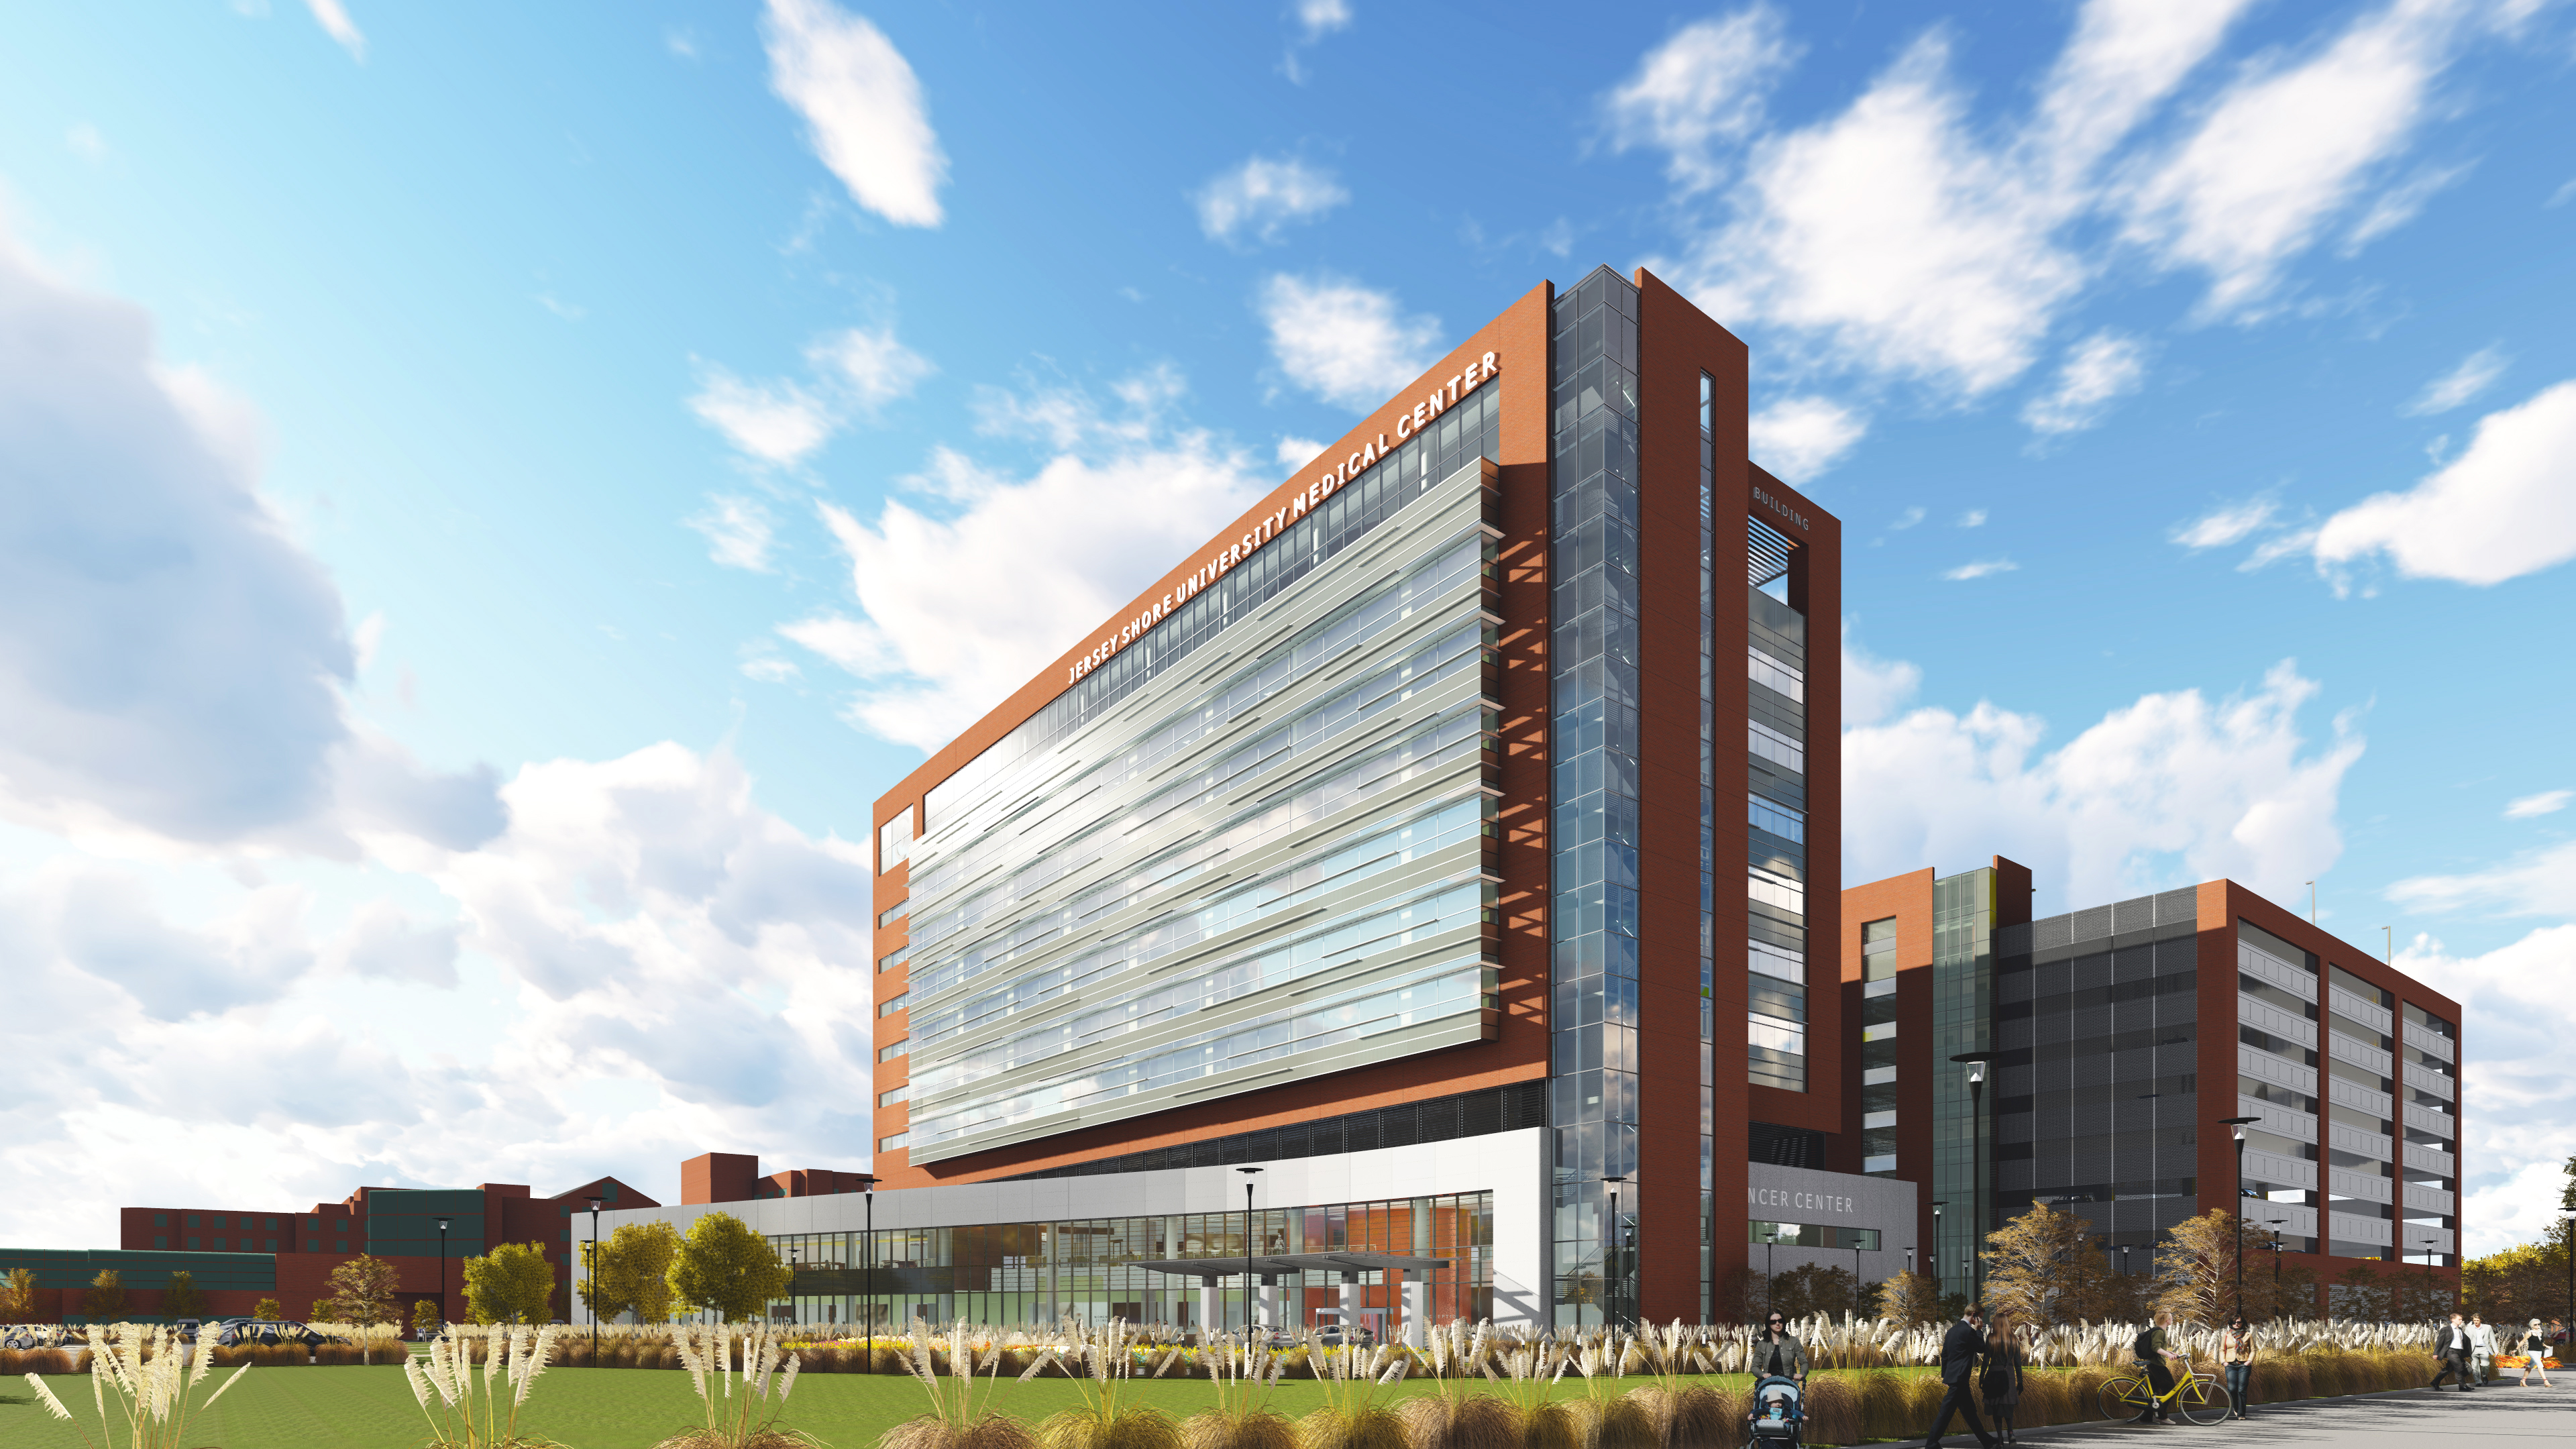 HOPE Tower adds cancer center, imaging services, academic